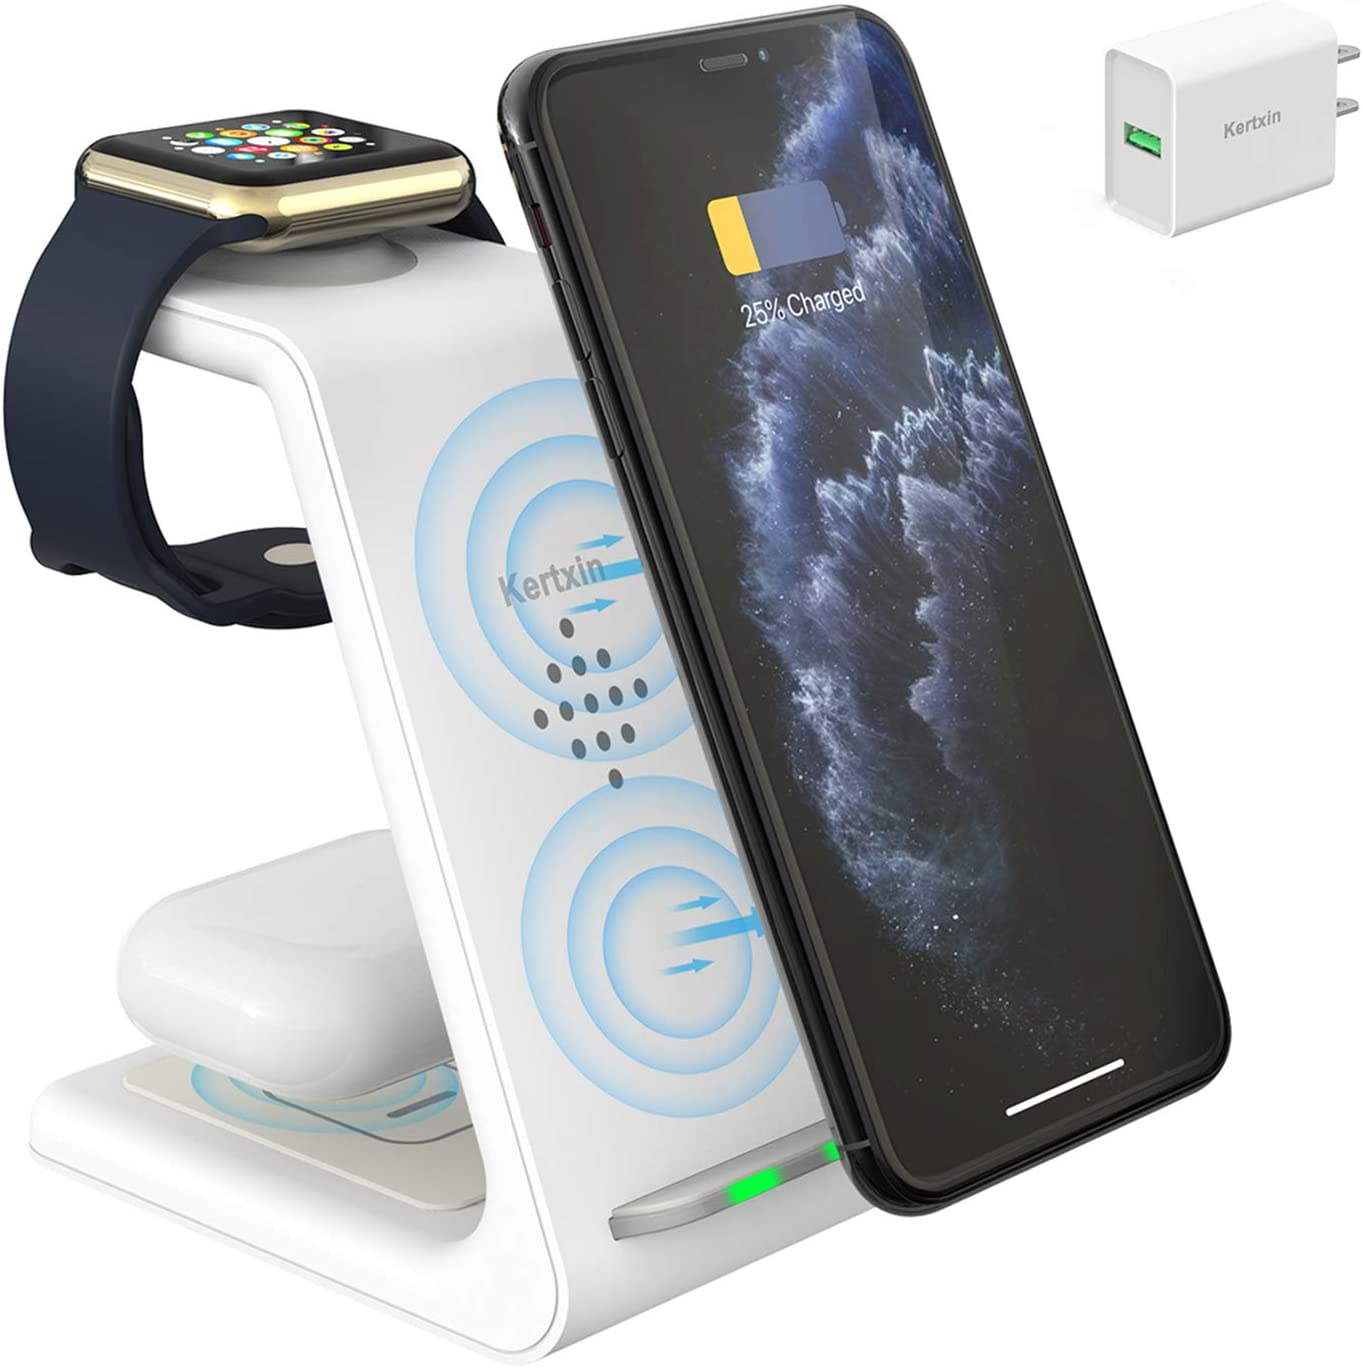 Kertxin 3 in 1 Qi-Certified Wireless Charger,Wireless Charging Station Dock for Apple Watch,AirPods,Wireless Charging Stand for iPhone 11 Pro Max/X/XS/XR/8/8 Plus,Samsung Galaxy S20 S10 S9 S8 Note 10